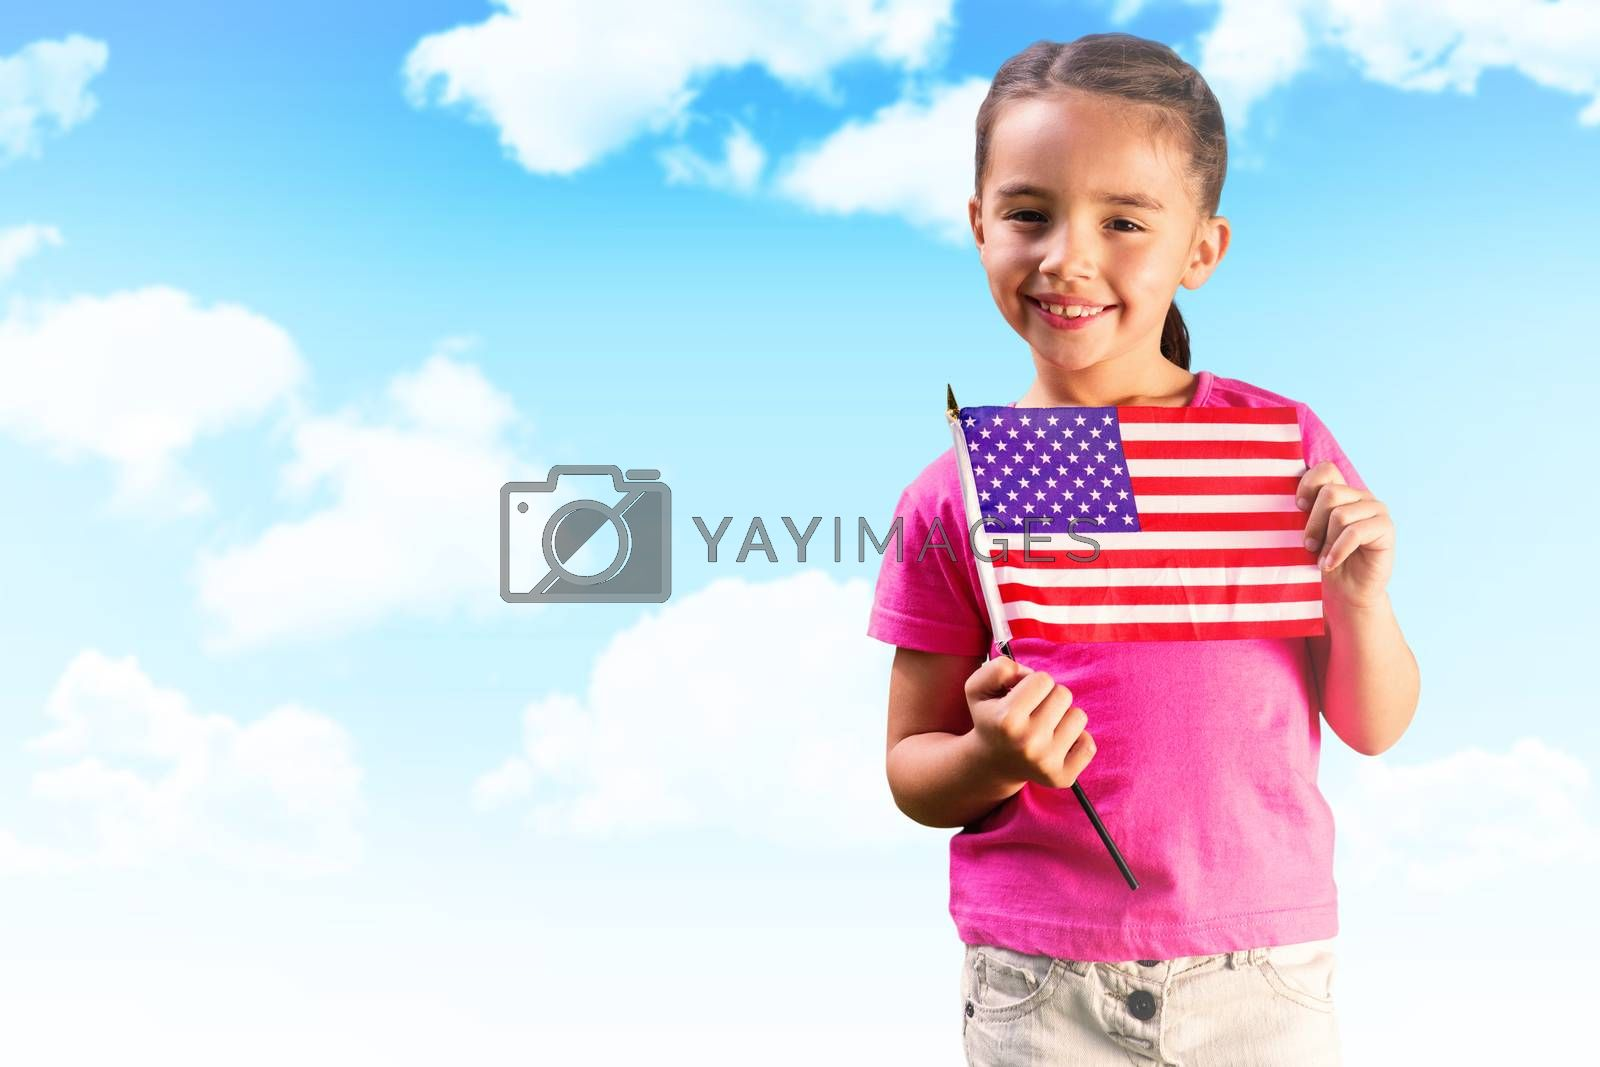 Little girl with american flag against blue sky